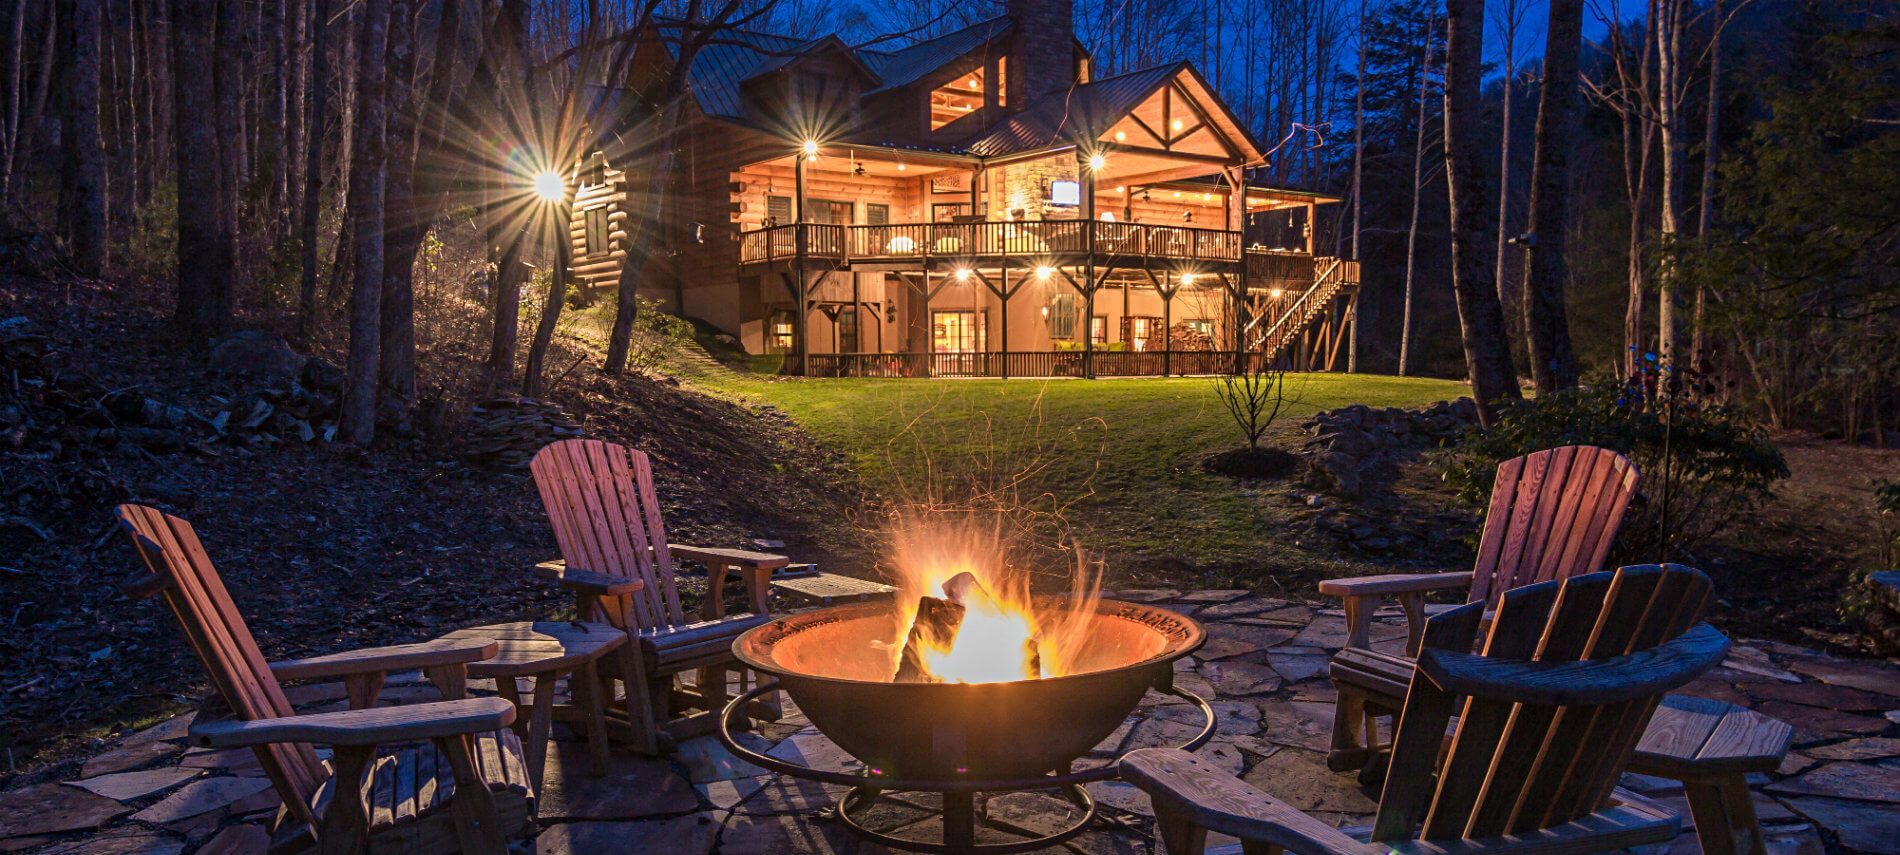 The Lodge at River Run view at night. The fire is in the fire pit which is surrounded by four chairs.Tree surround the sides of the house.